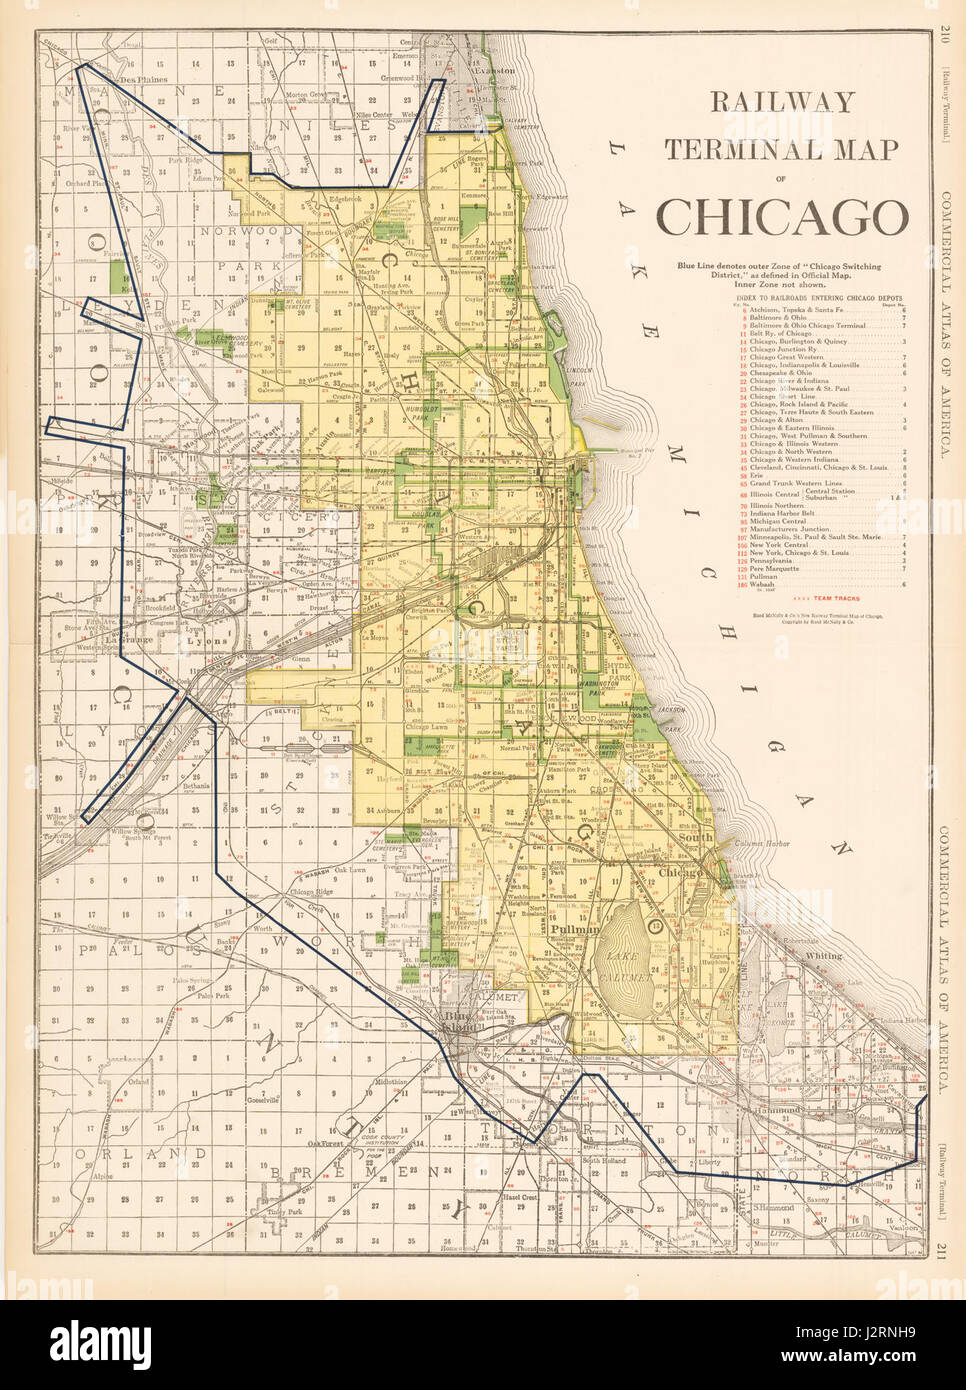 Map Of Chicago Stock Photos  Map Of Chicago Stock Images Alamy - Chicago terminal map